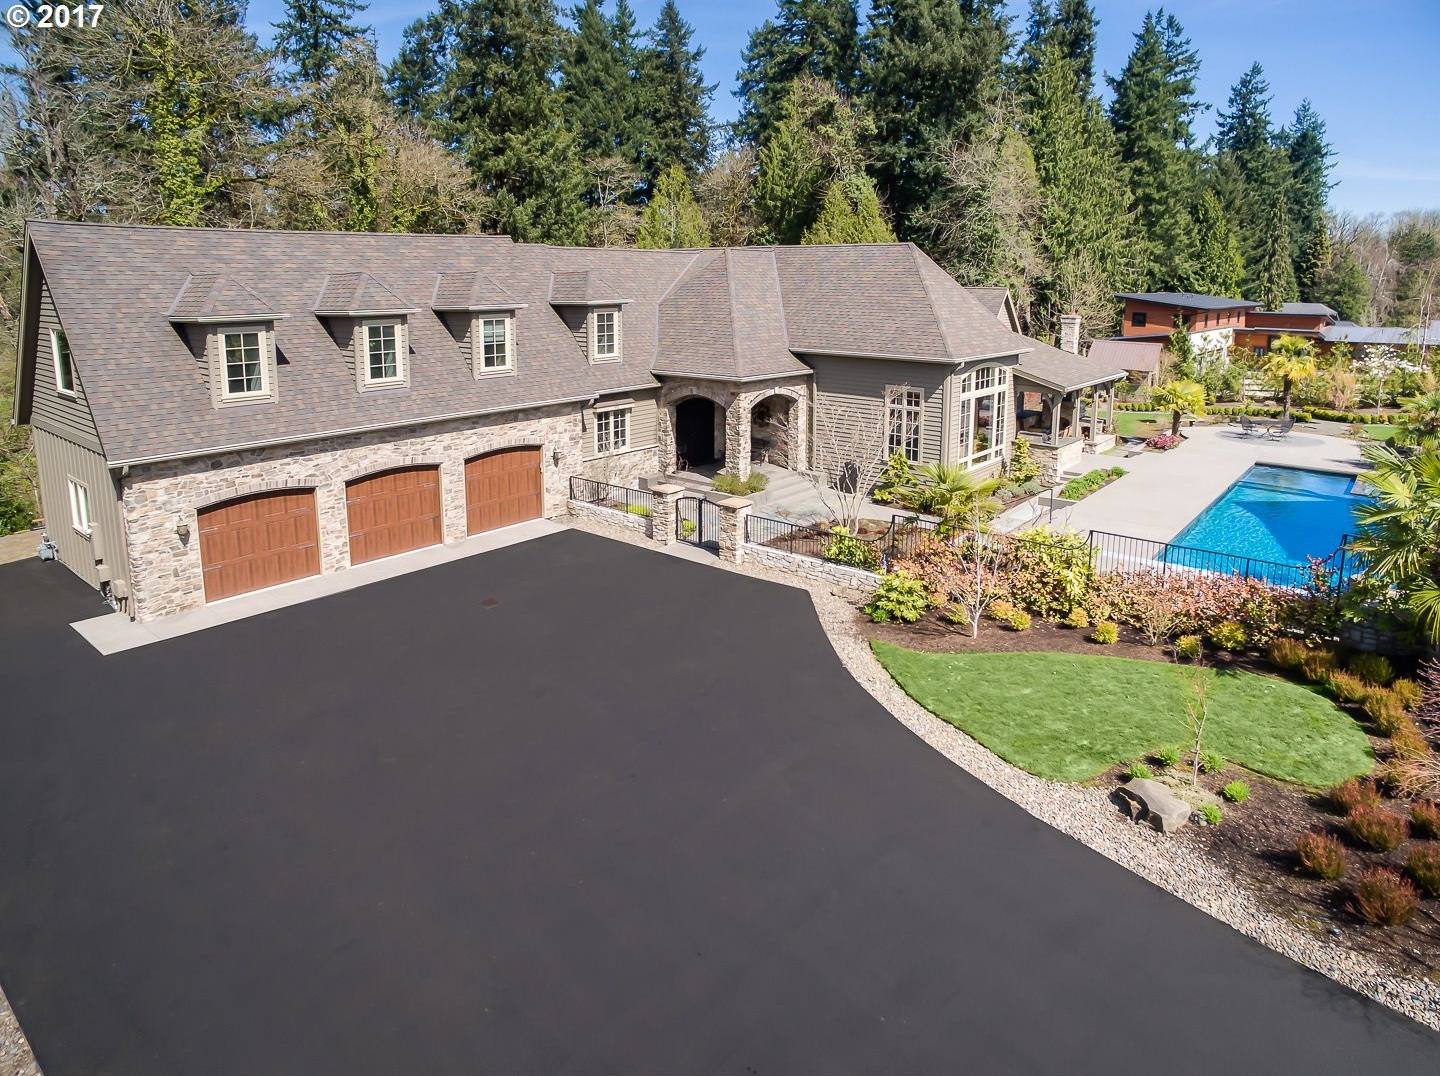 Photo of 951 ATWATER RD Lake Oswego OR 97034